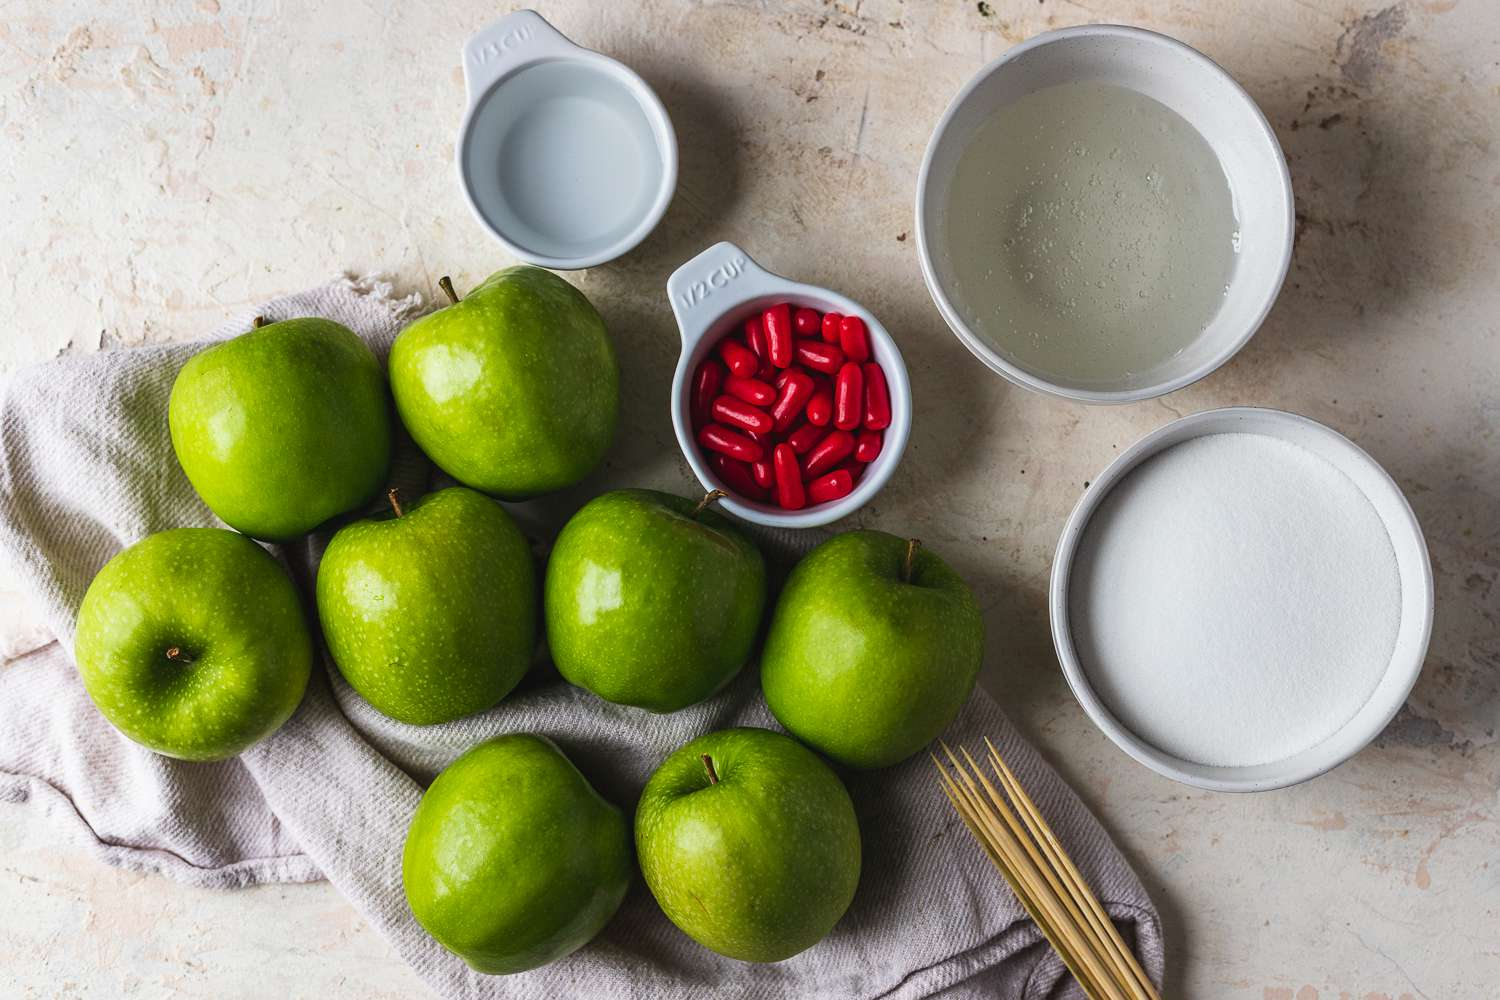 Candy Apples ingredients